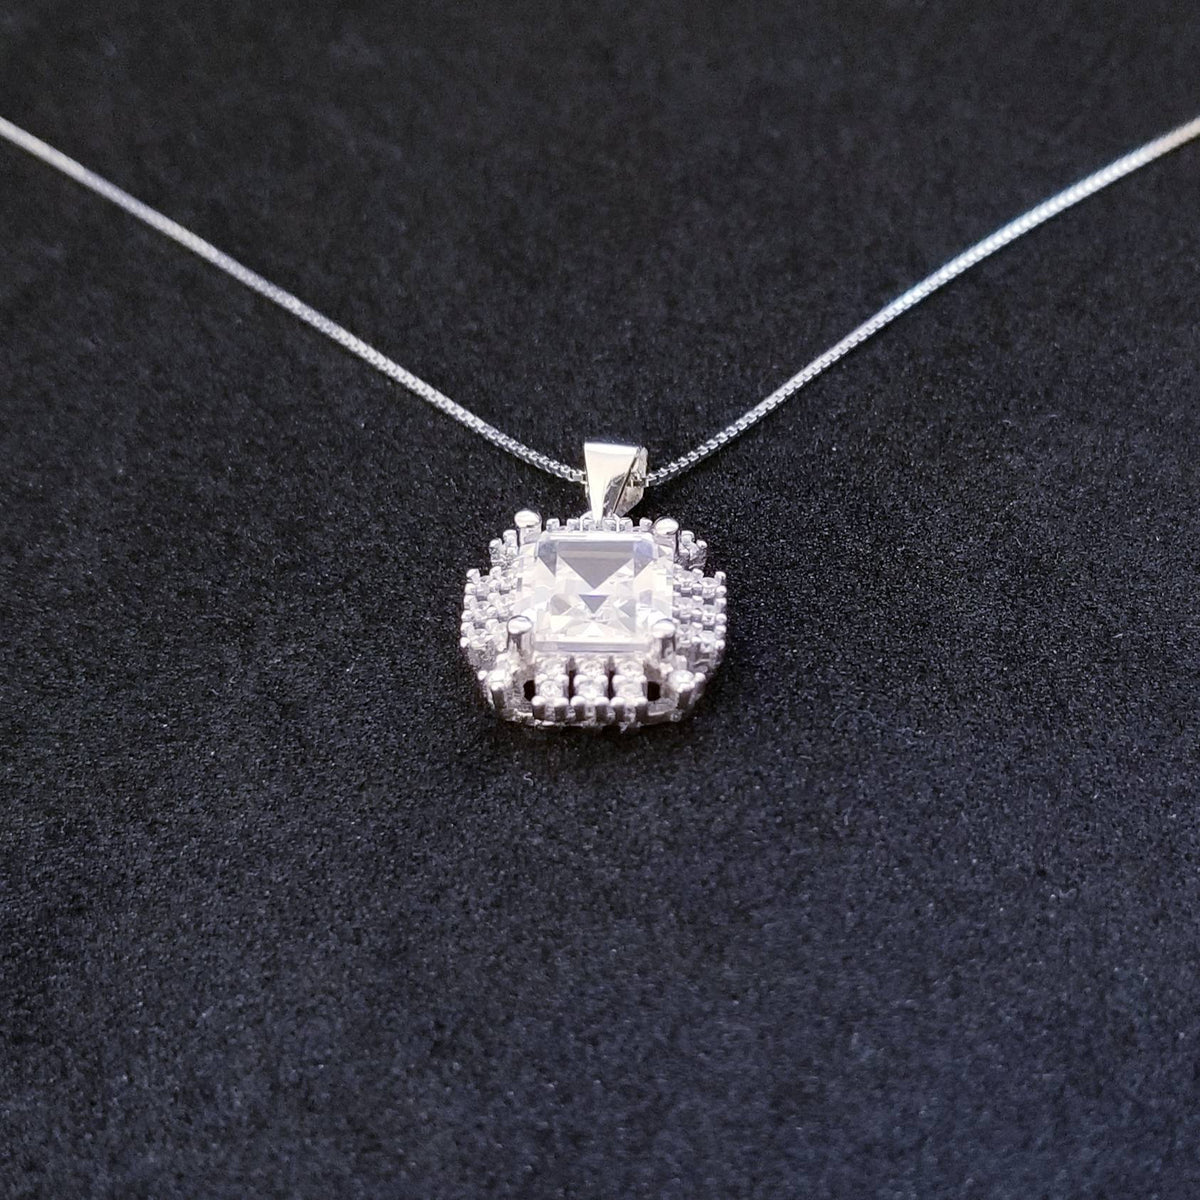 New 14k White Gold On 925 Sterling Silver Gorgeous Square Shaped CZ Stones Pendant Free Chain